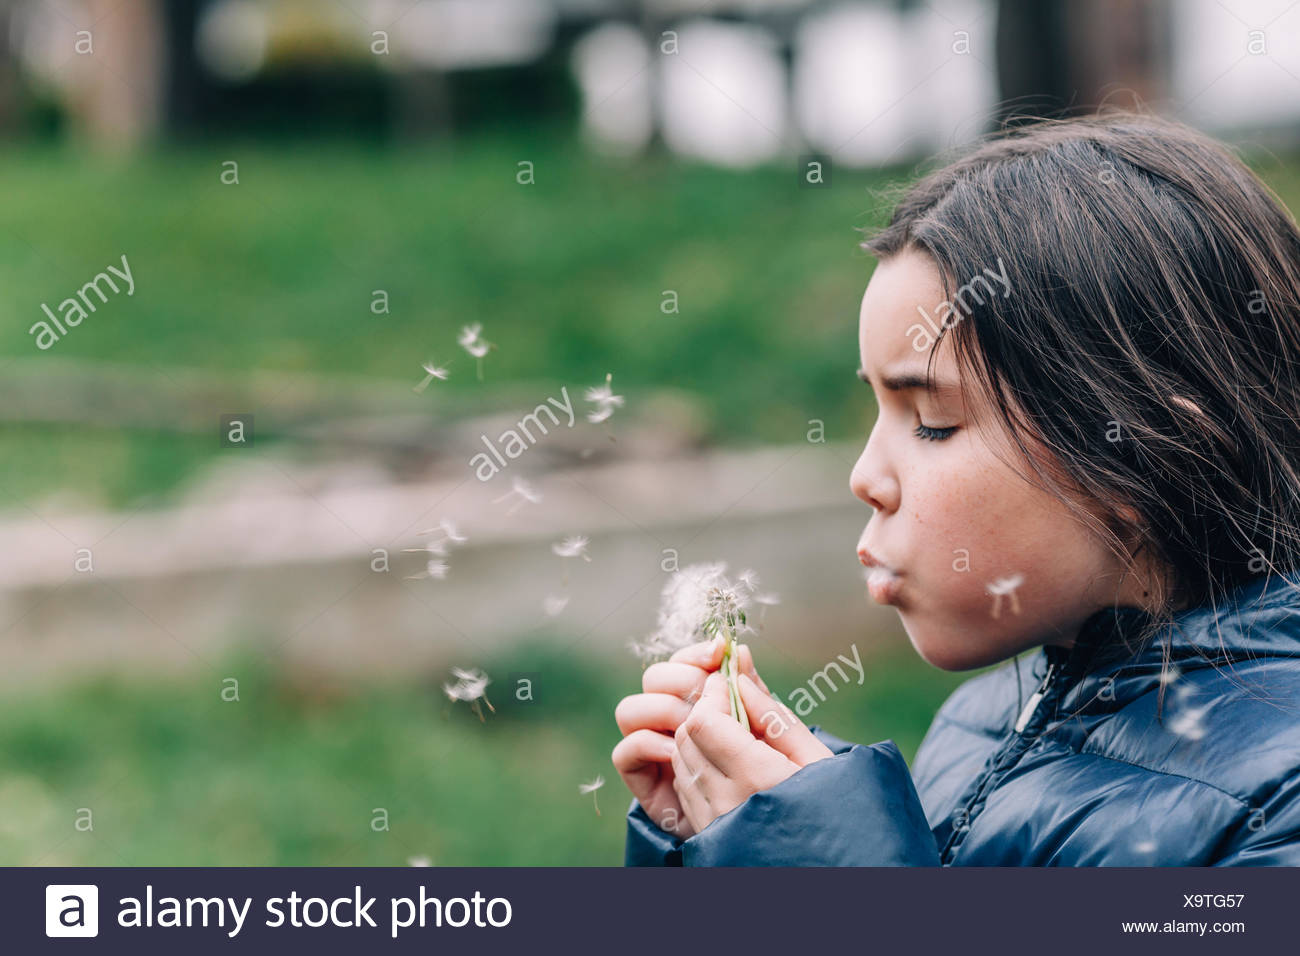 Girl blowing dandelion - Stock Image